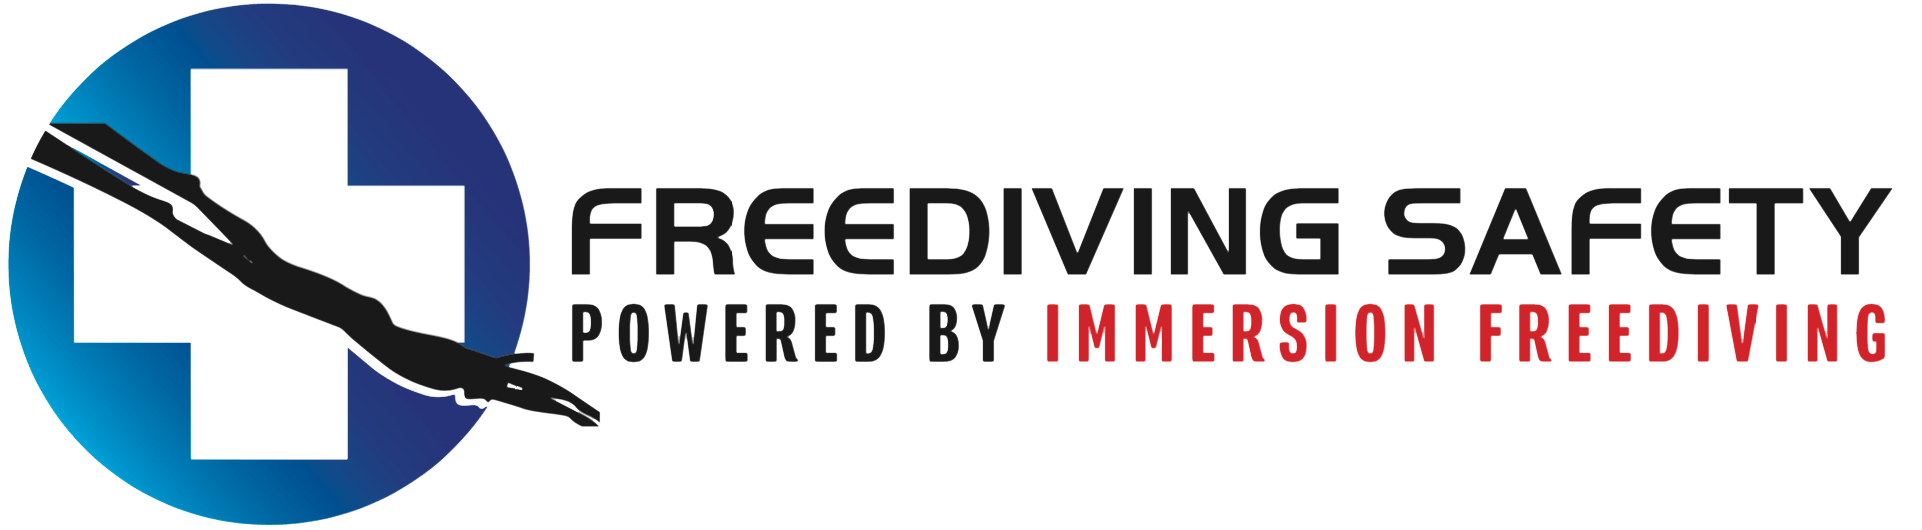 Freediving Safety